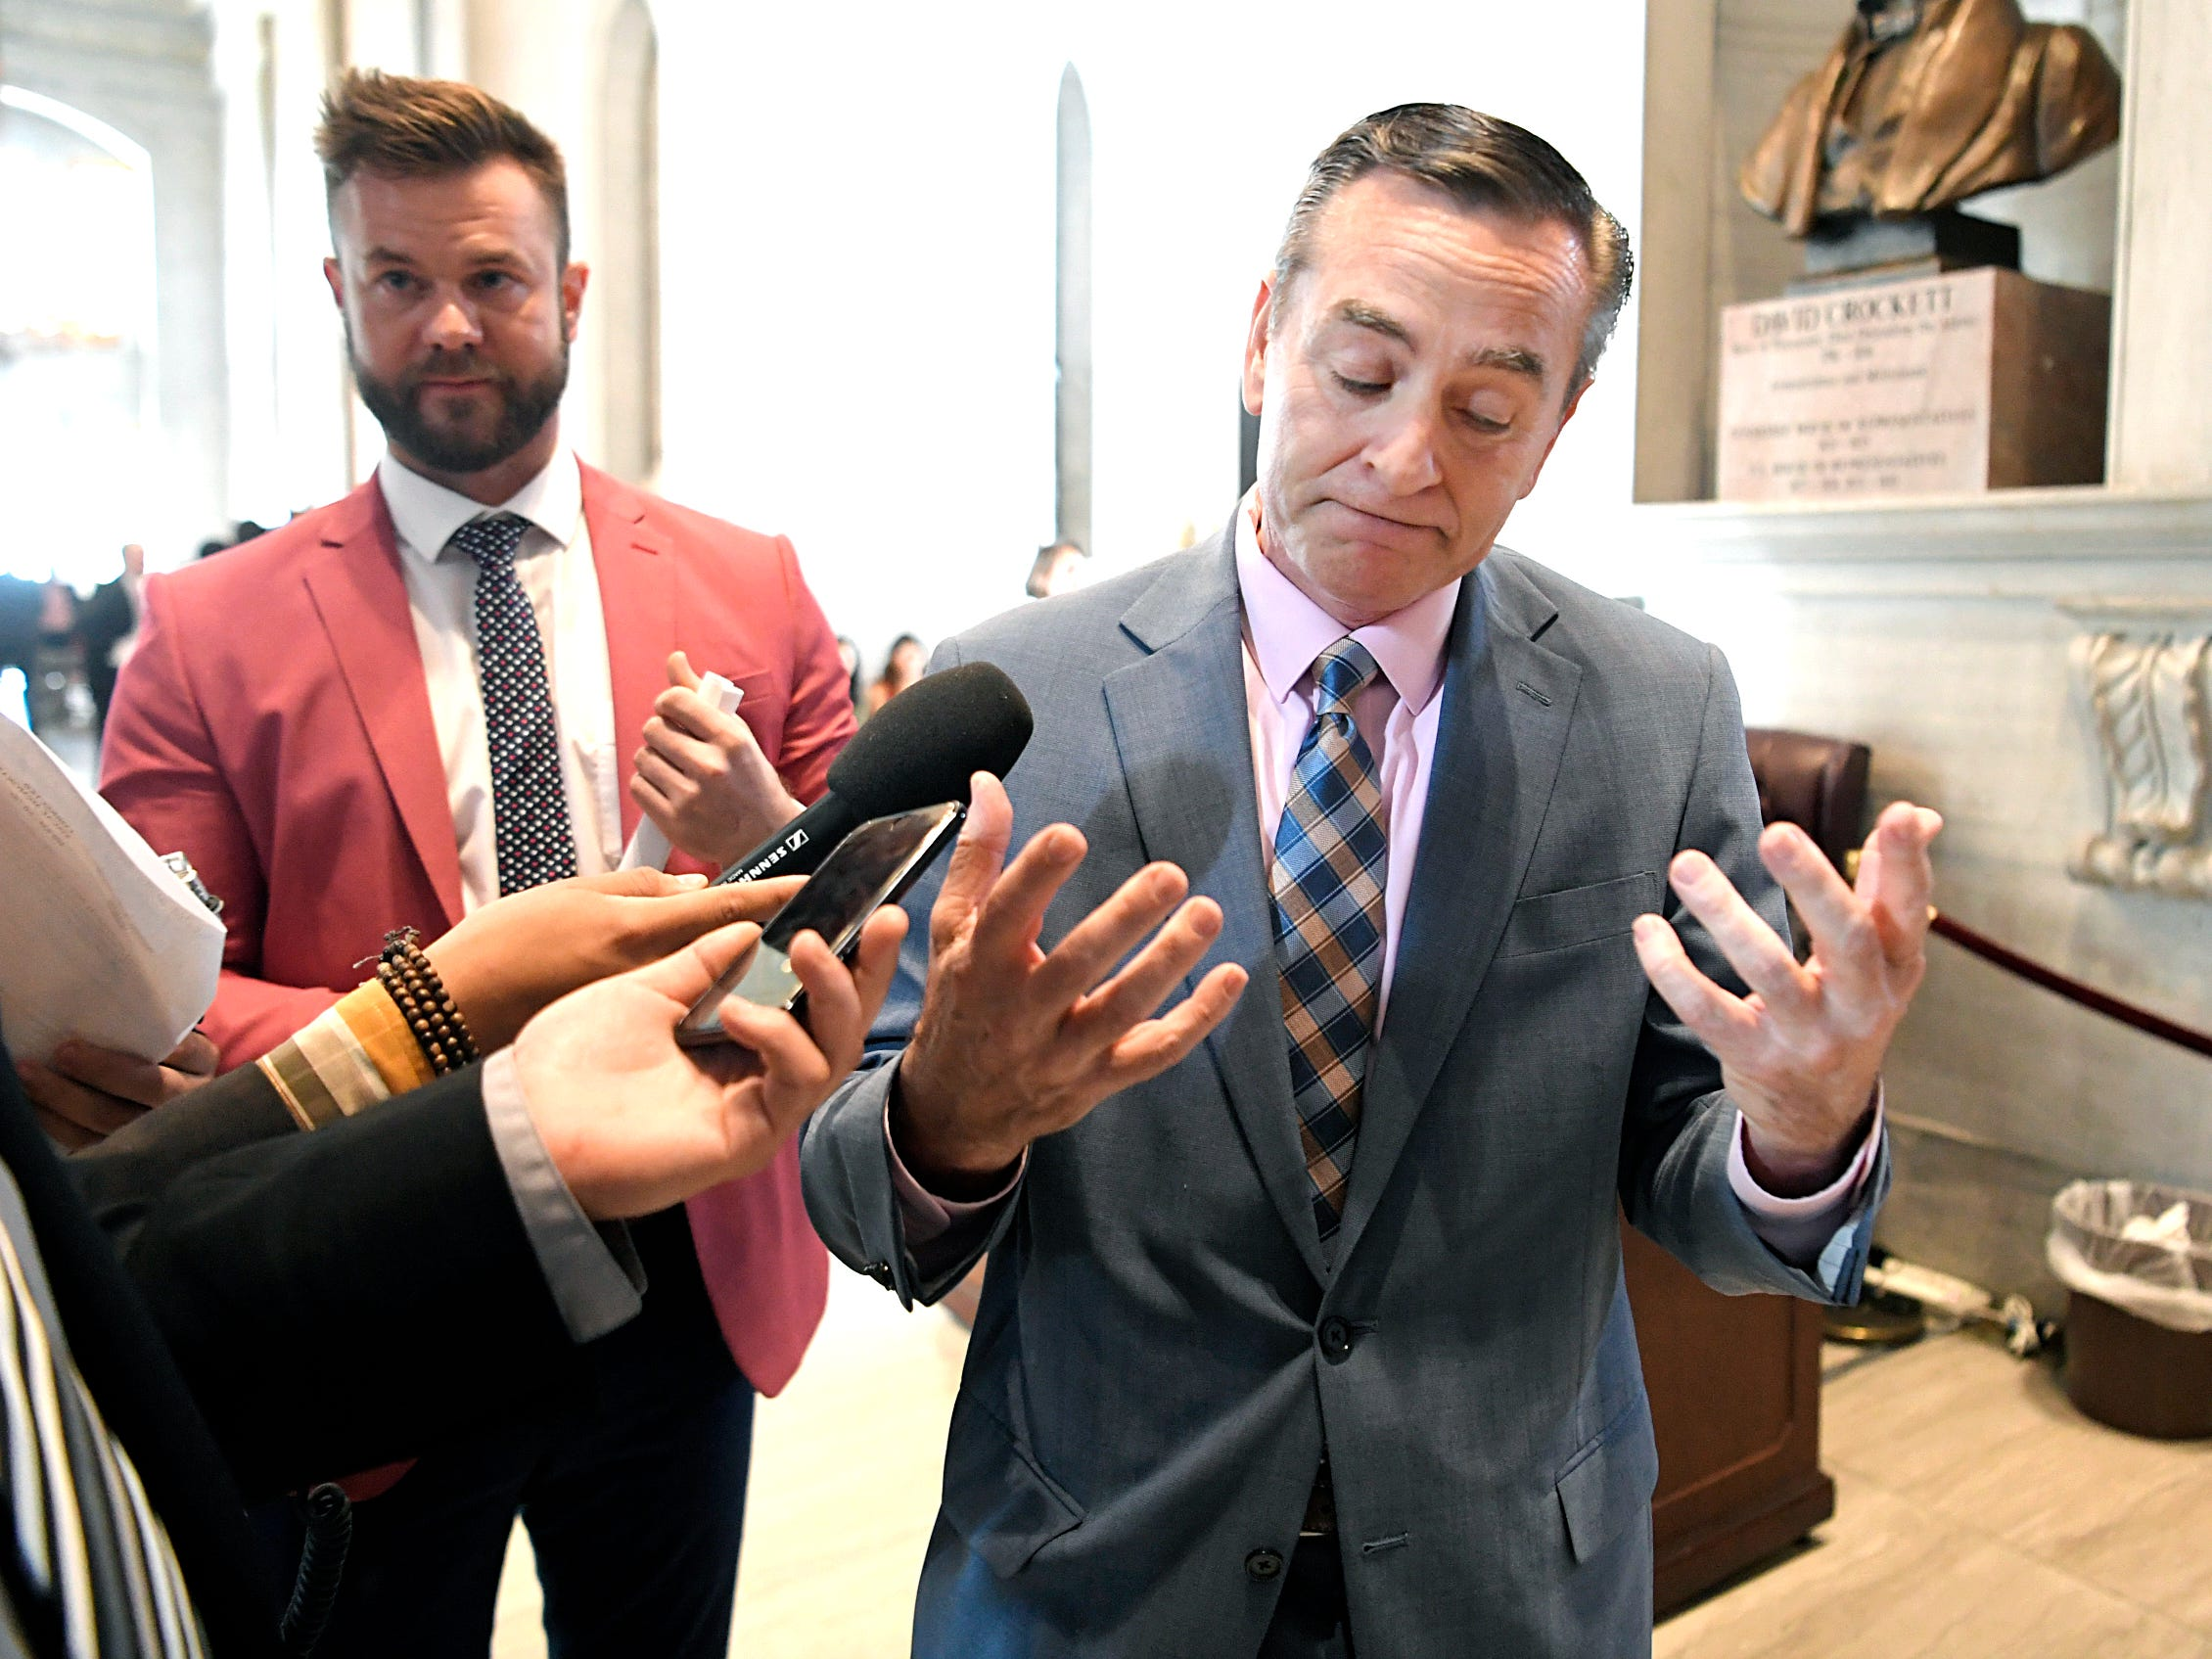 Reporters follow and ask questions of Speaker Glen Casada, right, regarding HB 939 during the General Assembly session in Nashville on Wednesday, May 1, 2019. Casada's chief of staff, Cade Cothren, stands at left.